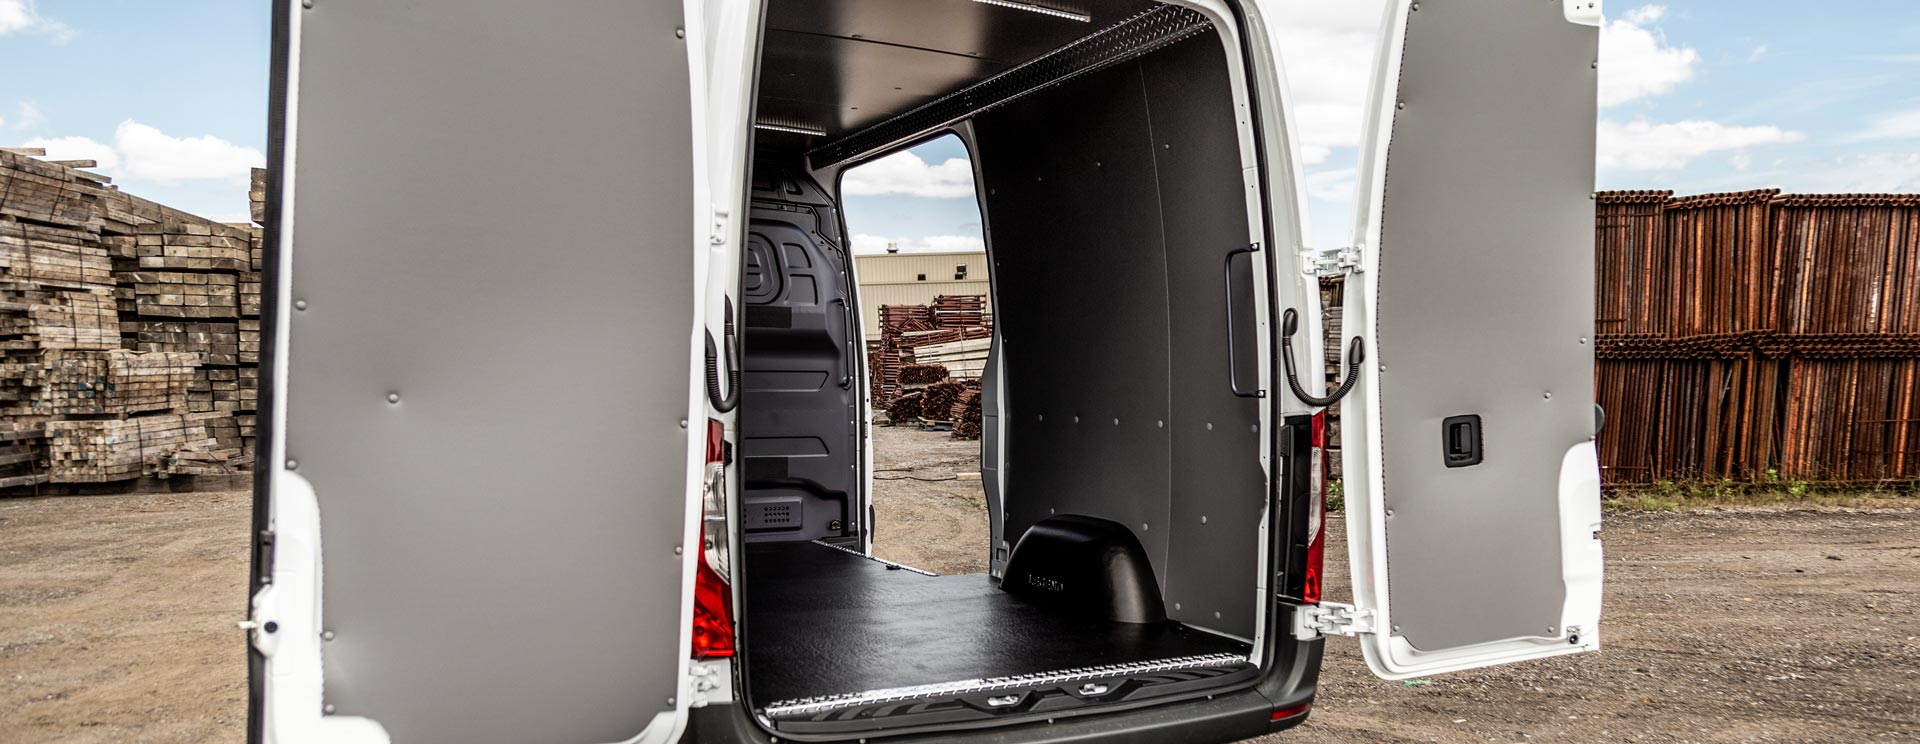 Legend Van Liner Kits for Mercedes-Benz Sprinter, RAM ProMaster, and Ford Transit